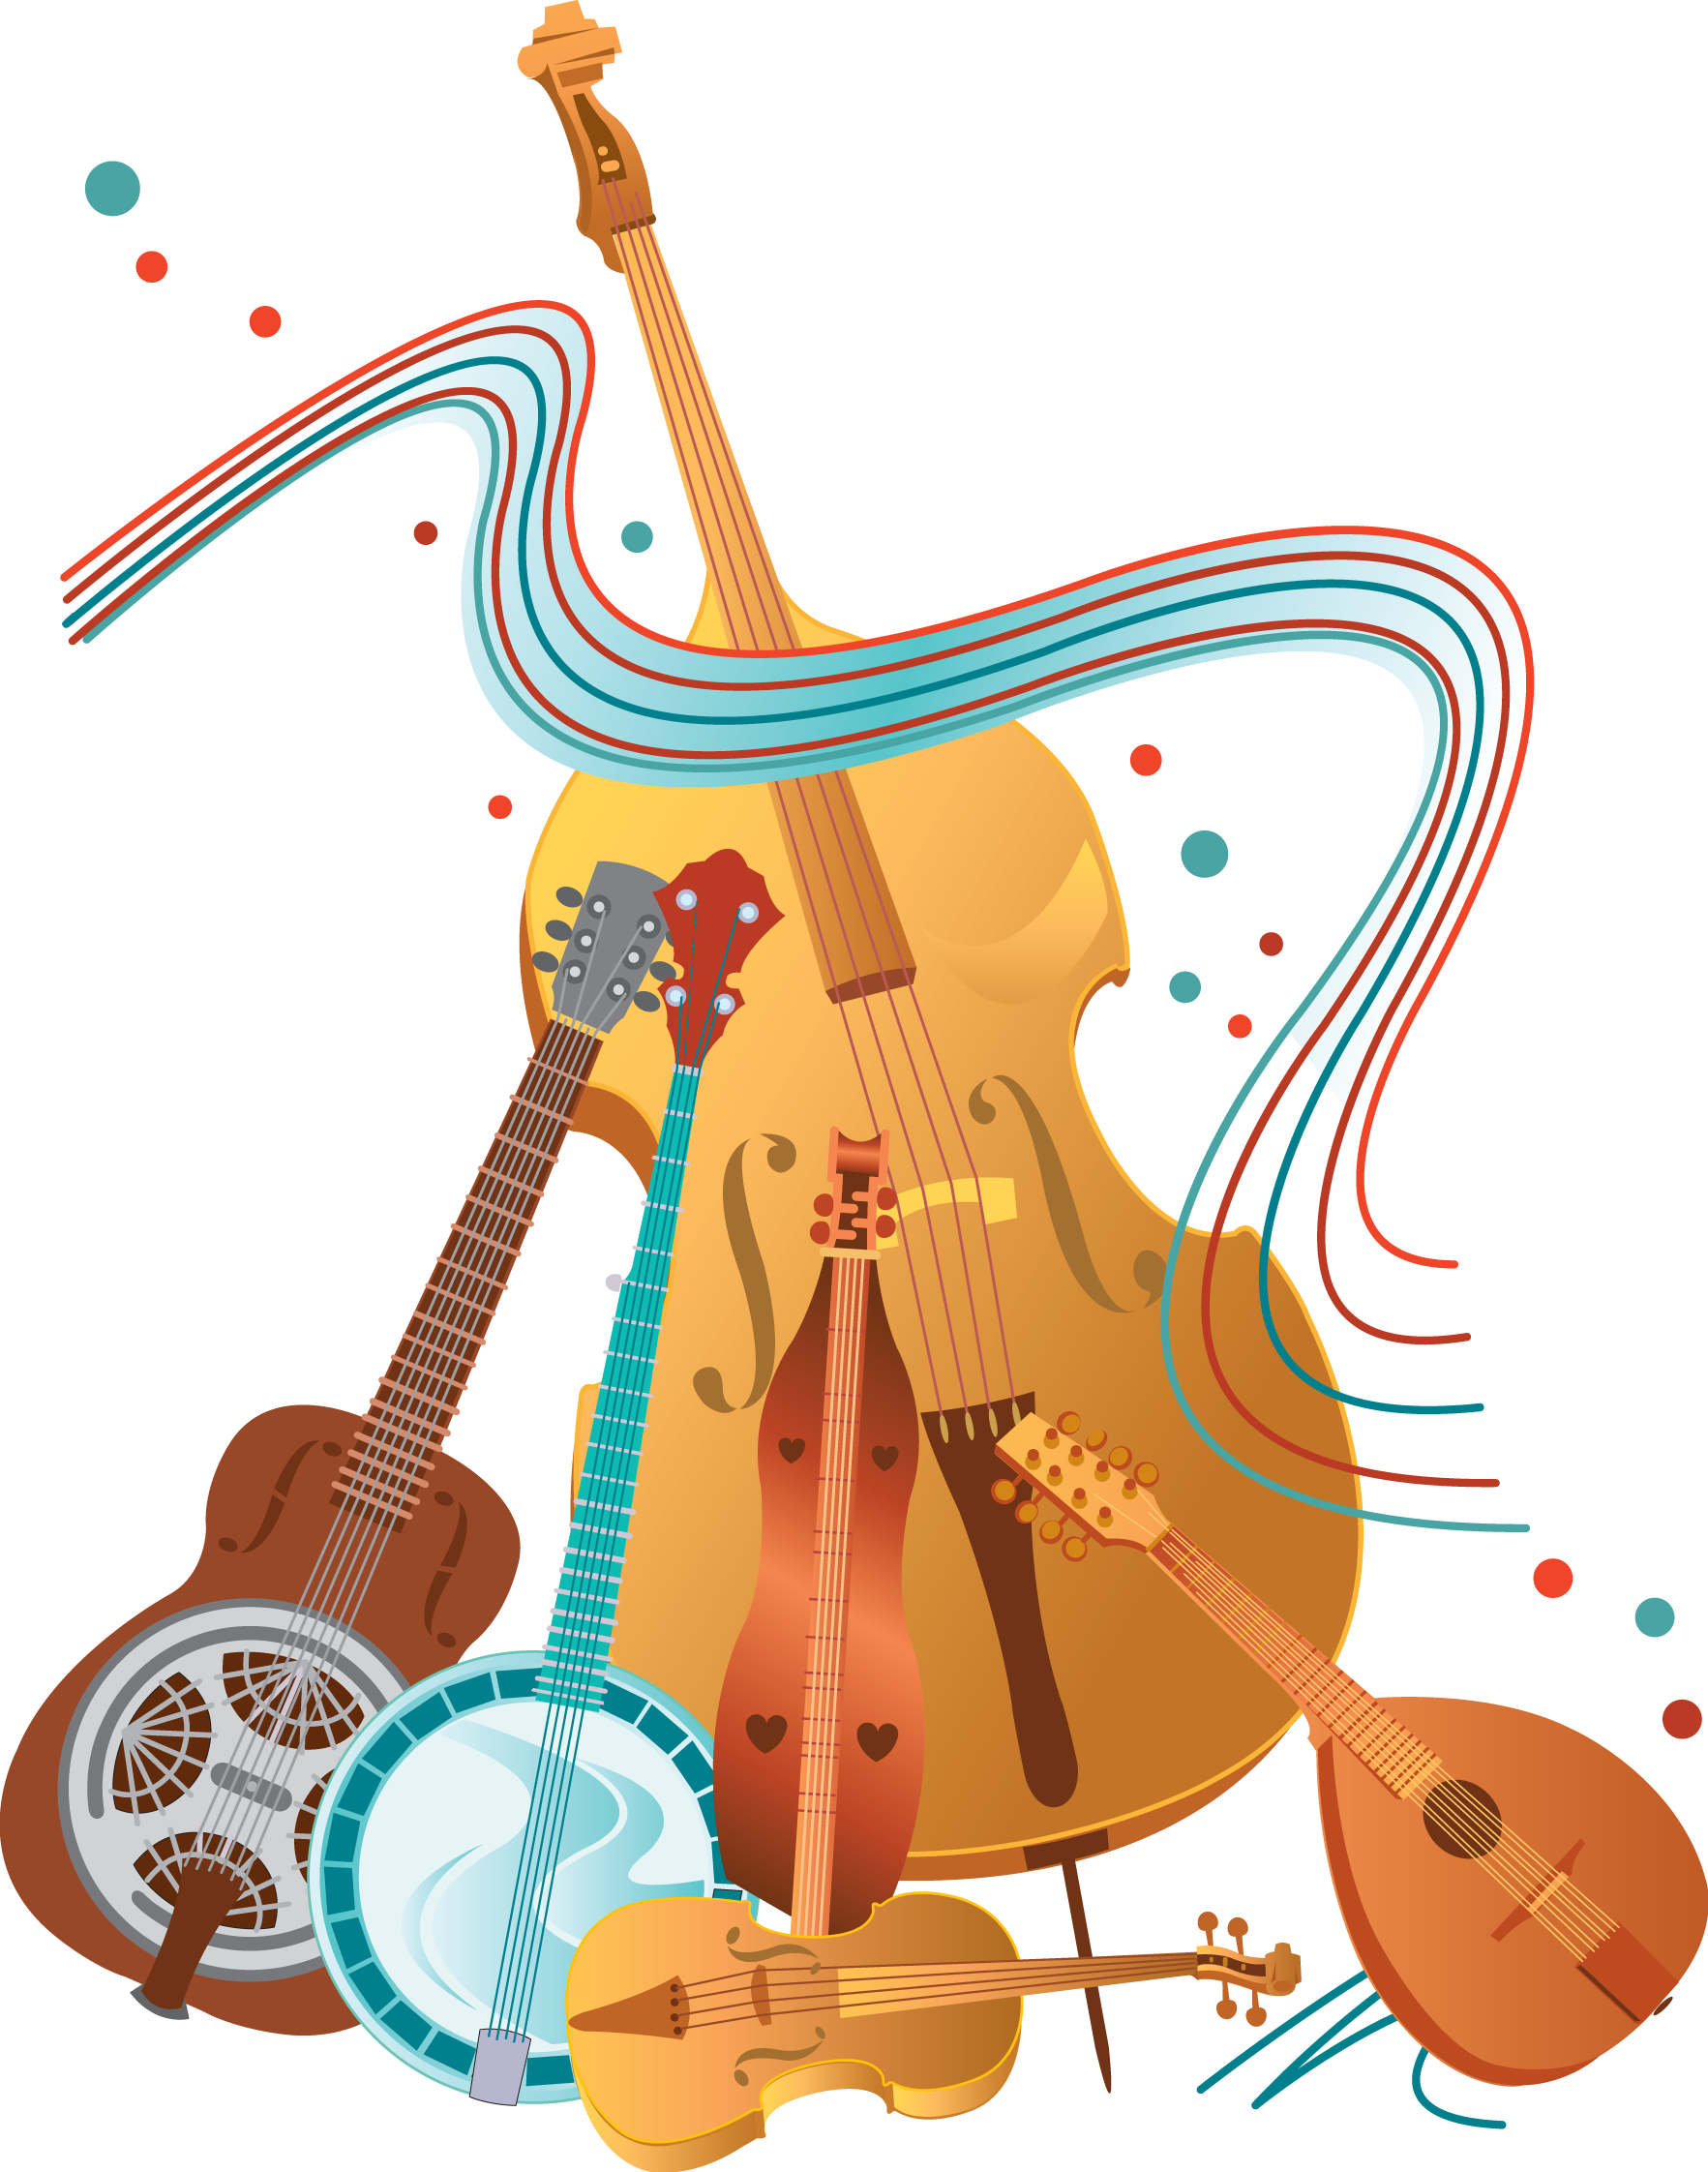 Bluegrass Instruments Clip Art free image.